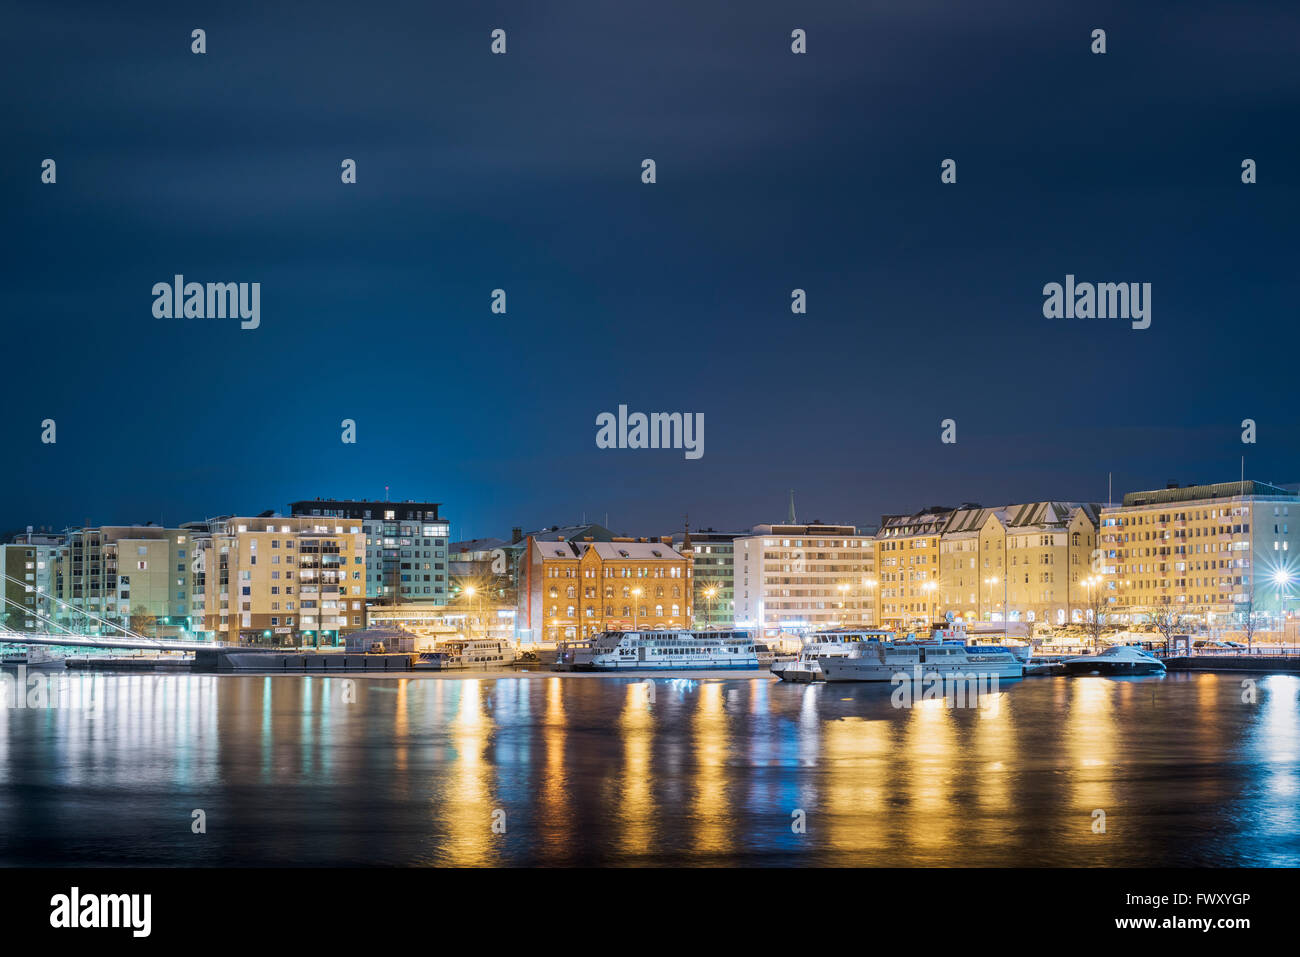 Finland, Pirkanmaa, Tampere, Illuminated waterfront with ships at night Stock Photo